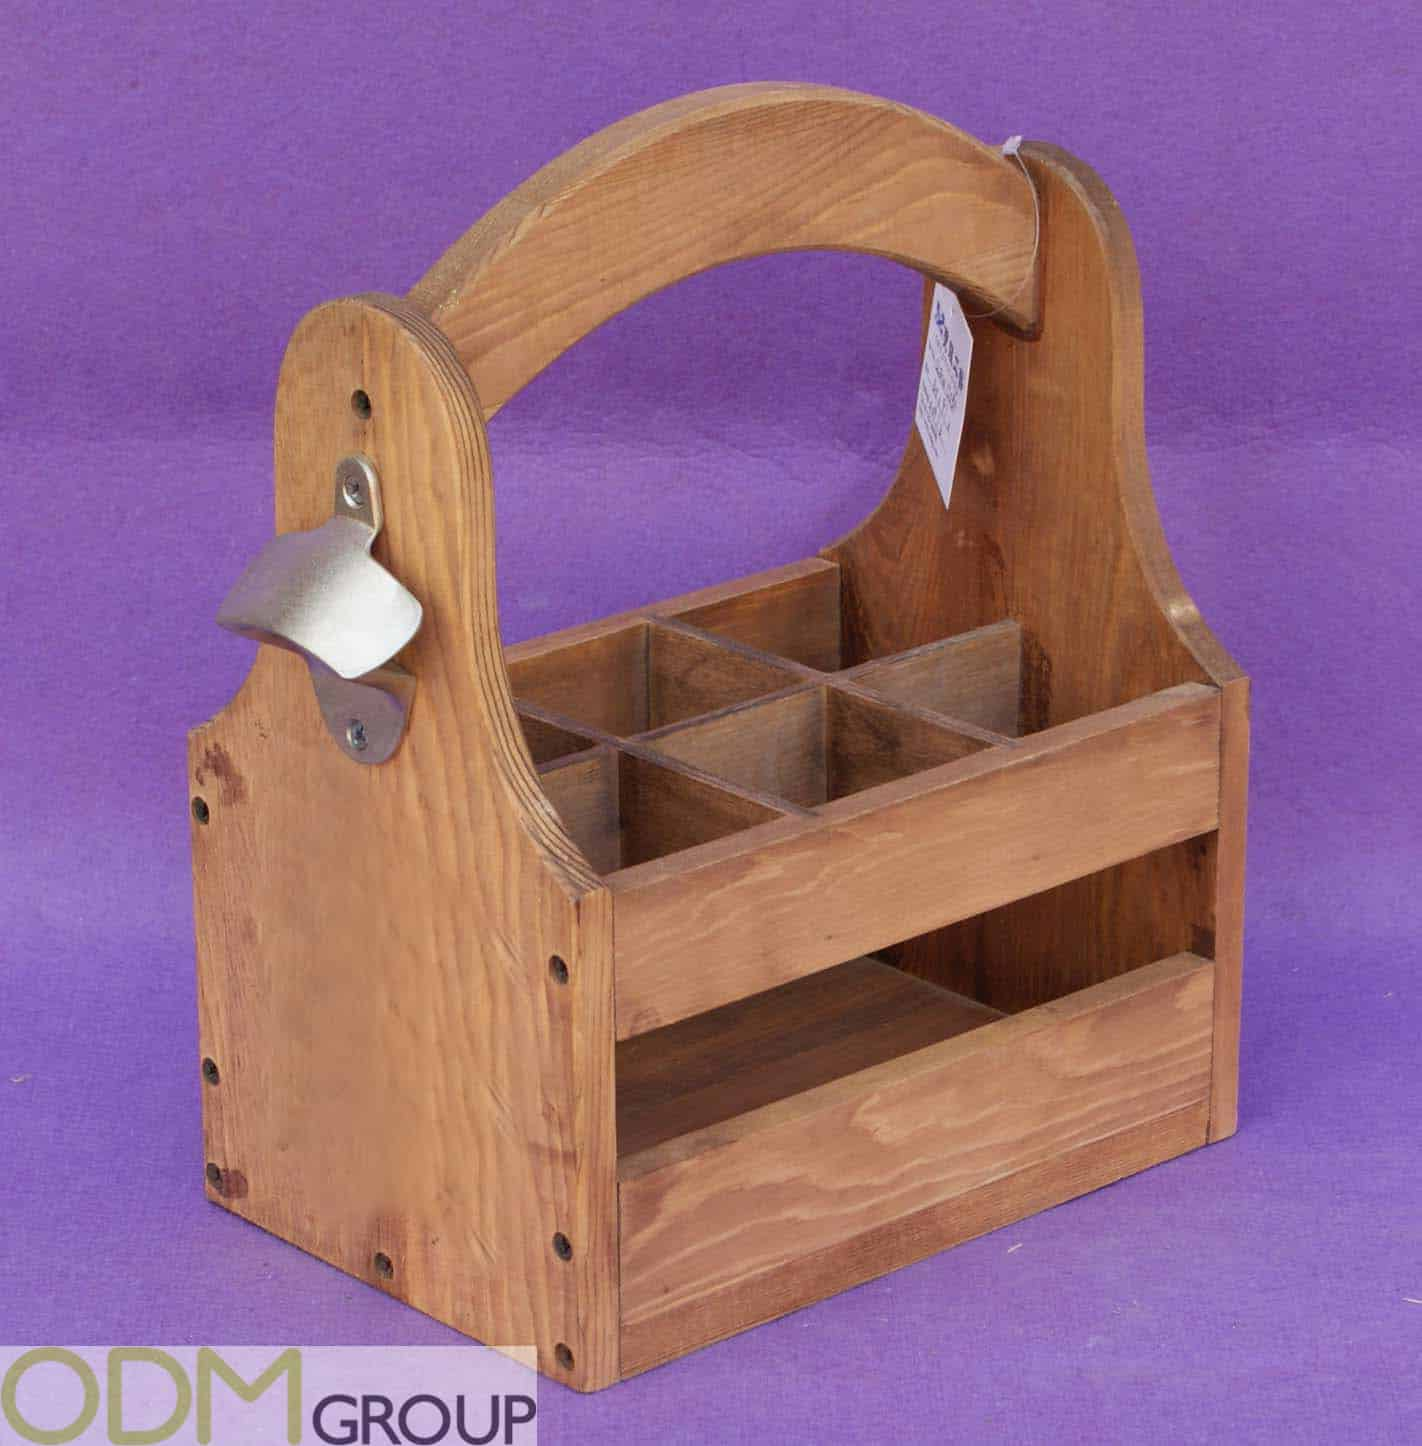 Wooden Bottle Stands Perfect For a Drinks Promotion